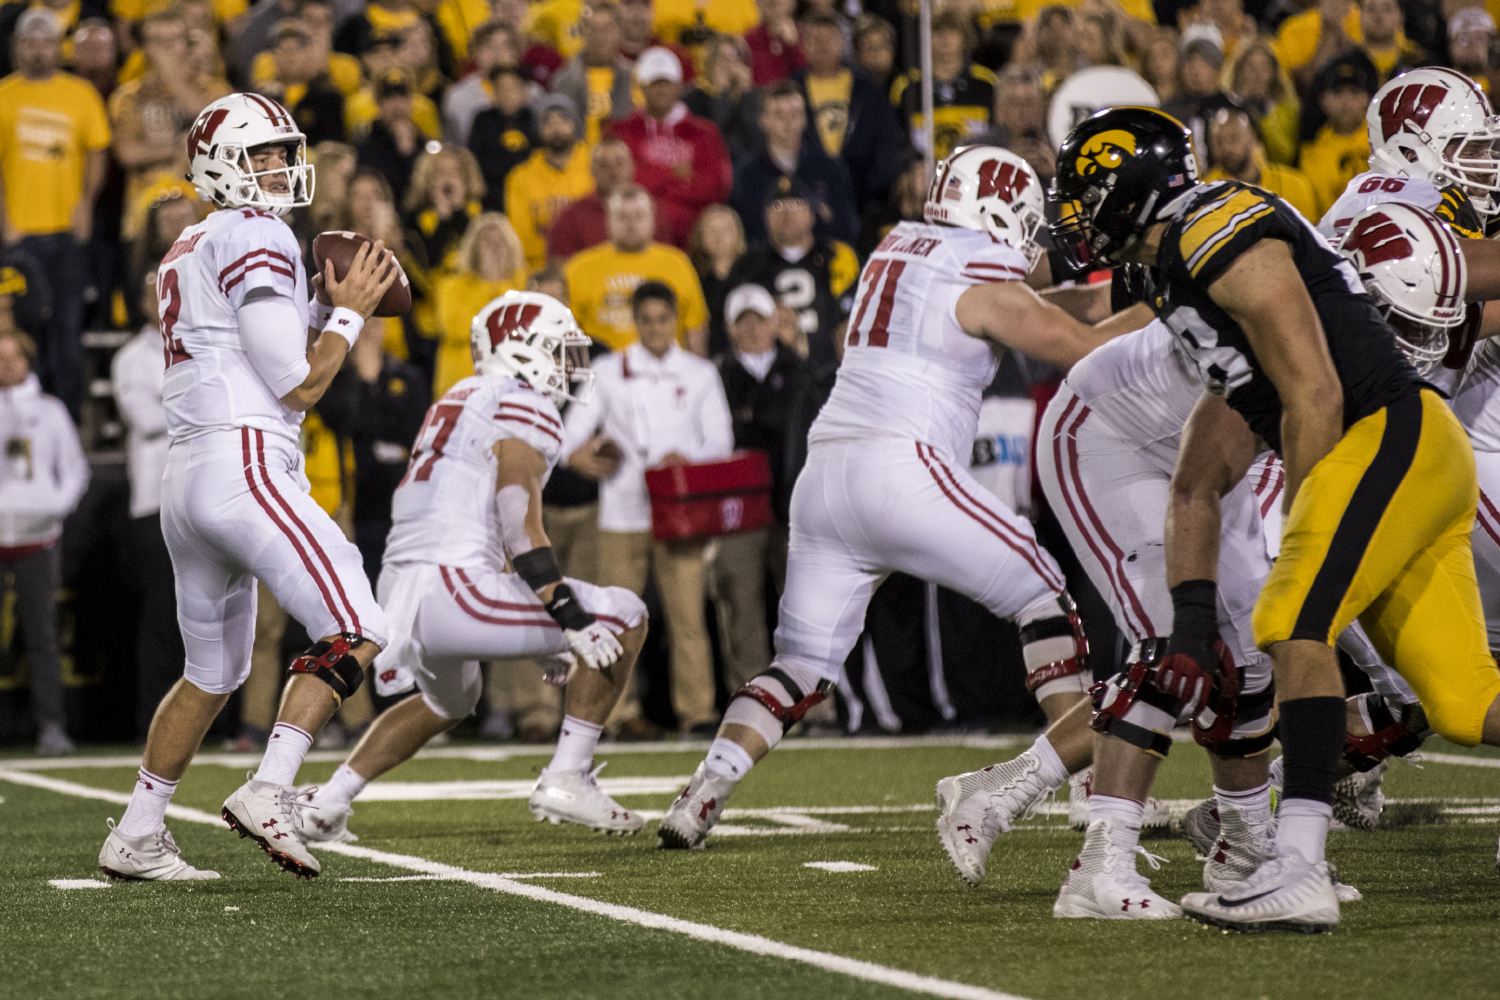 Wisconsin quarterback Alex Hornibrook drops back during Iowa's game against Wisconsin at Kinnick Stadium on Saturday, Sept. 22, 2018. The Badgers defeated the Hawkeyes 28-17.